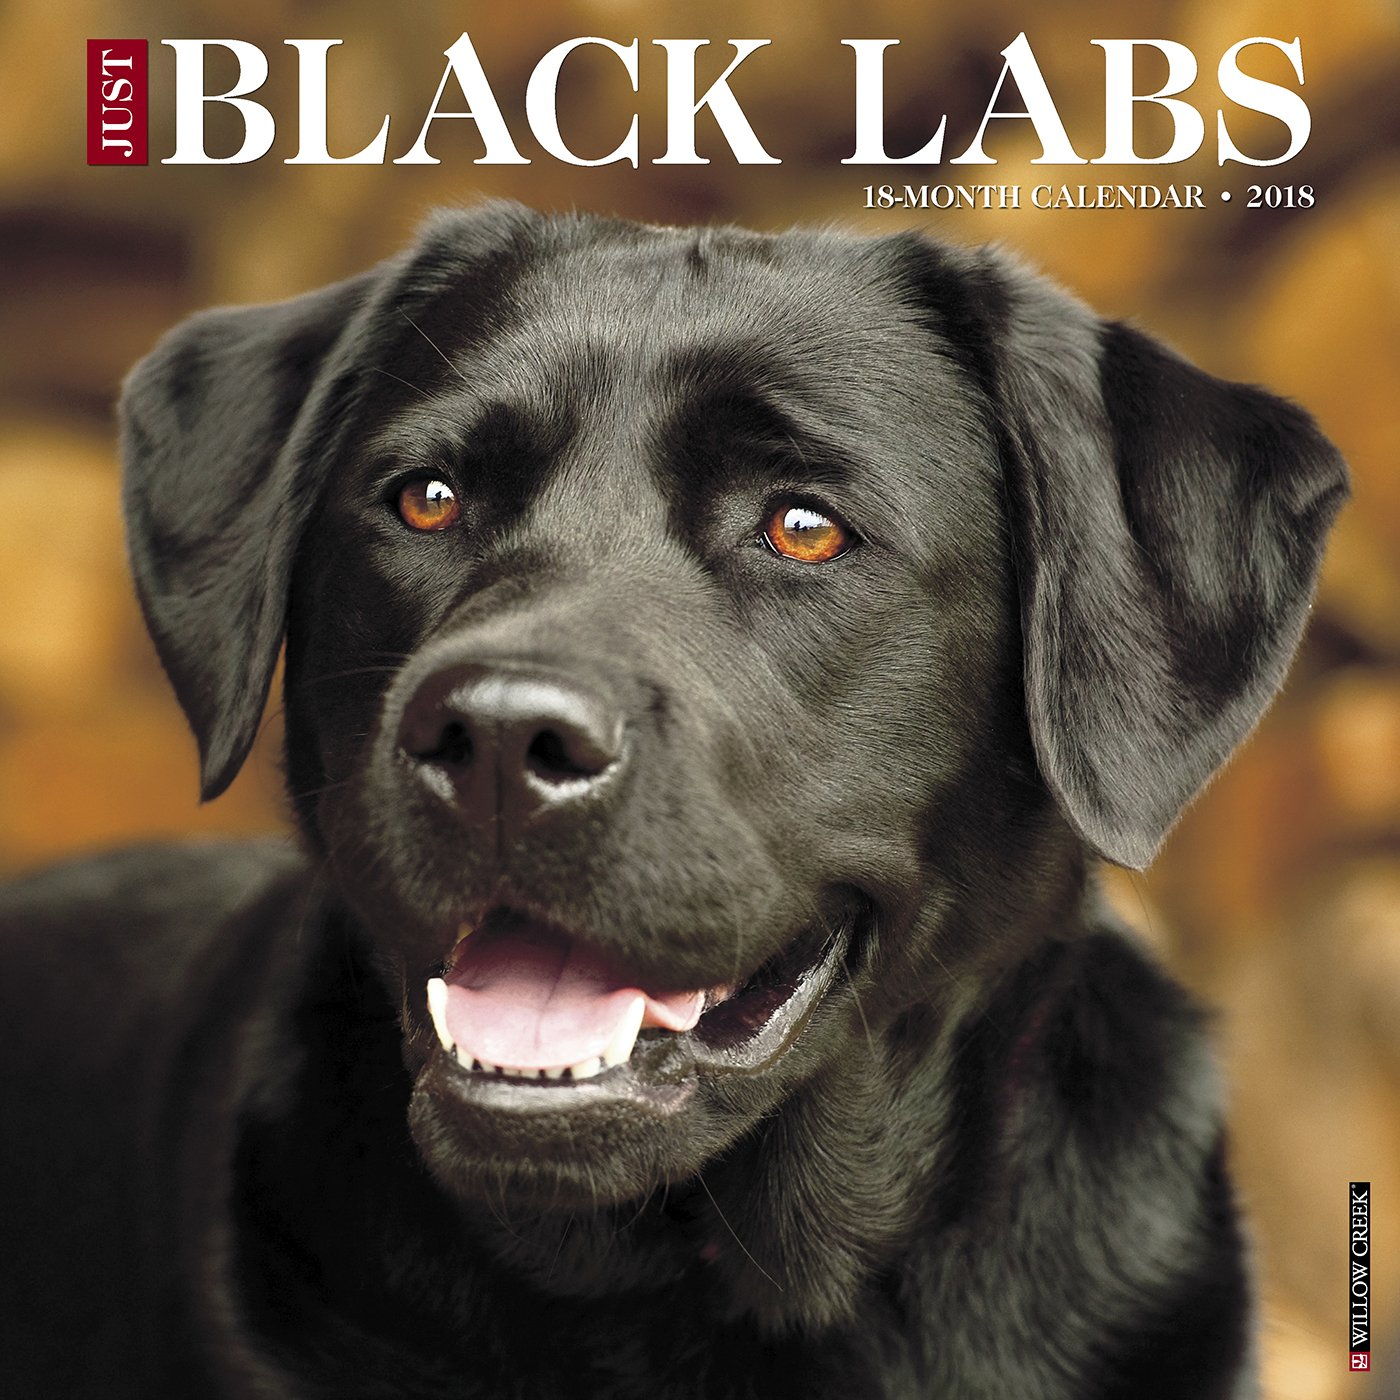 Just Black Labs 2018 Calendar: Willow Creek Press: 0709786040193 ...